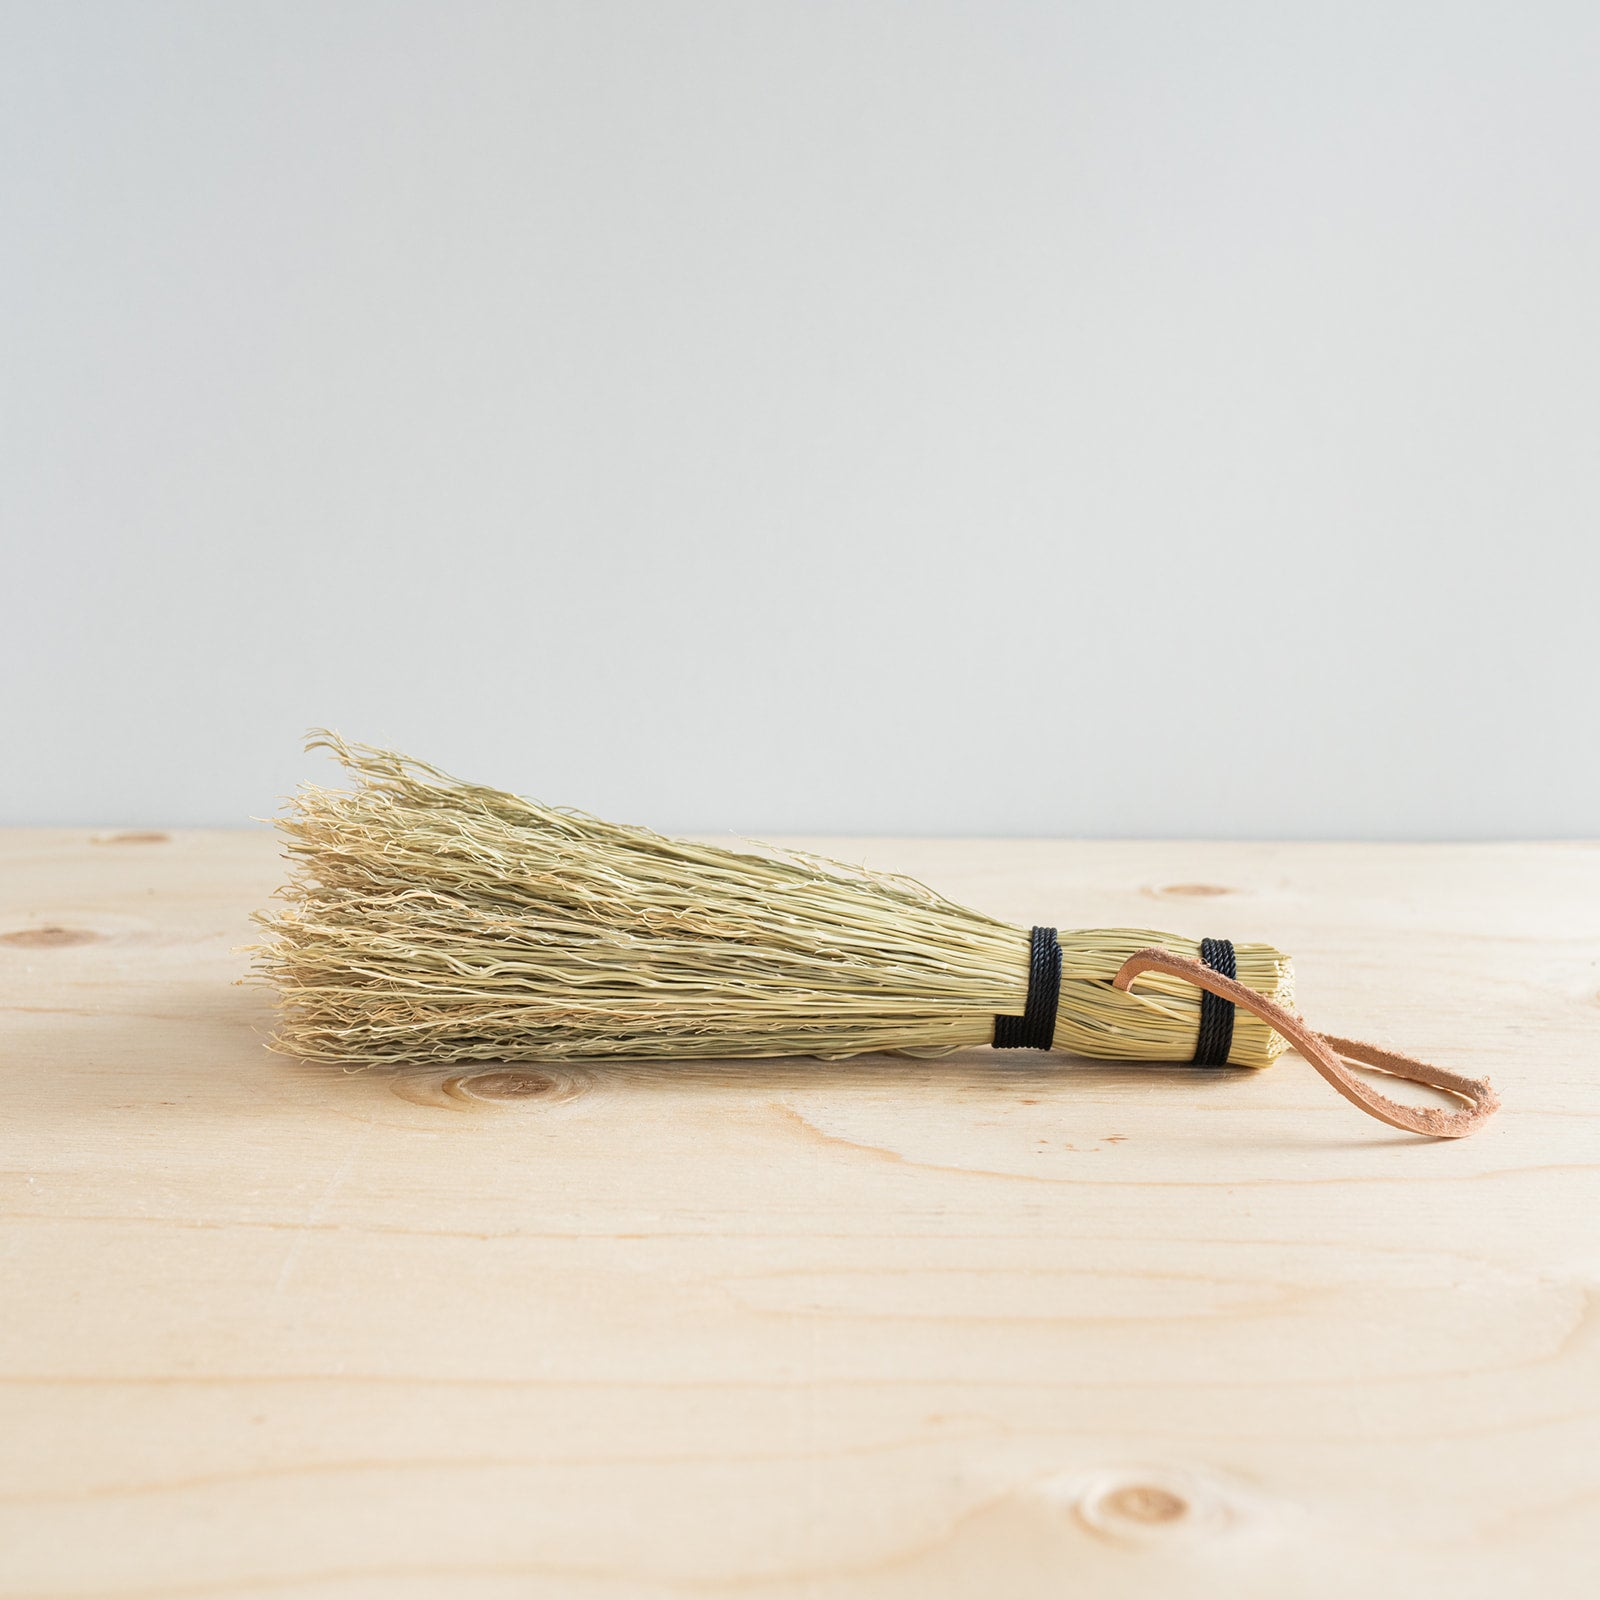 Small Brush Hand Broom